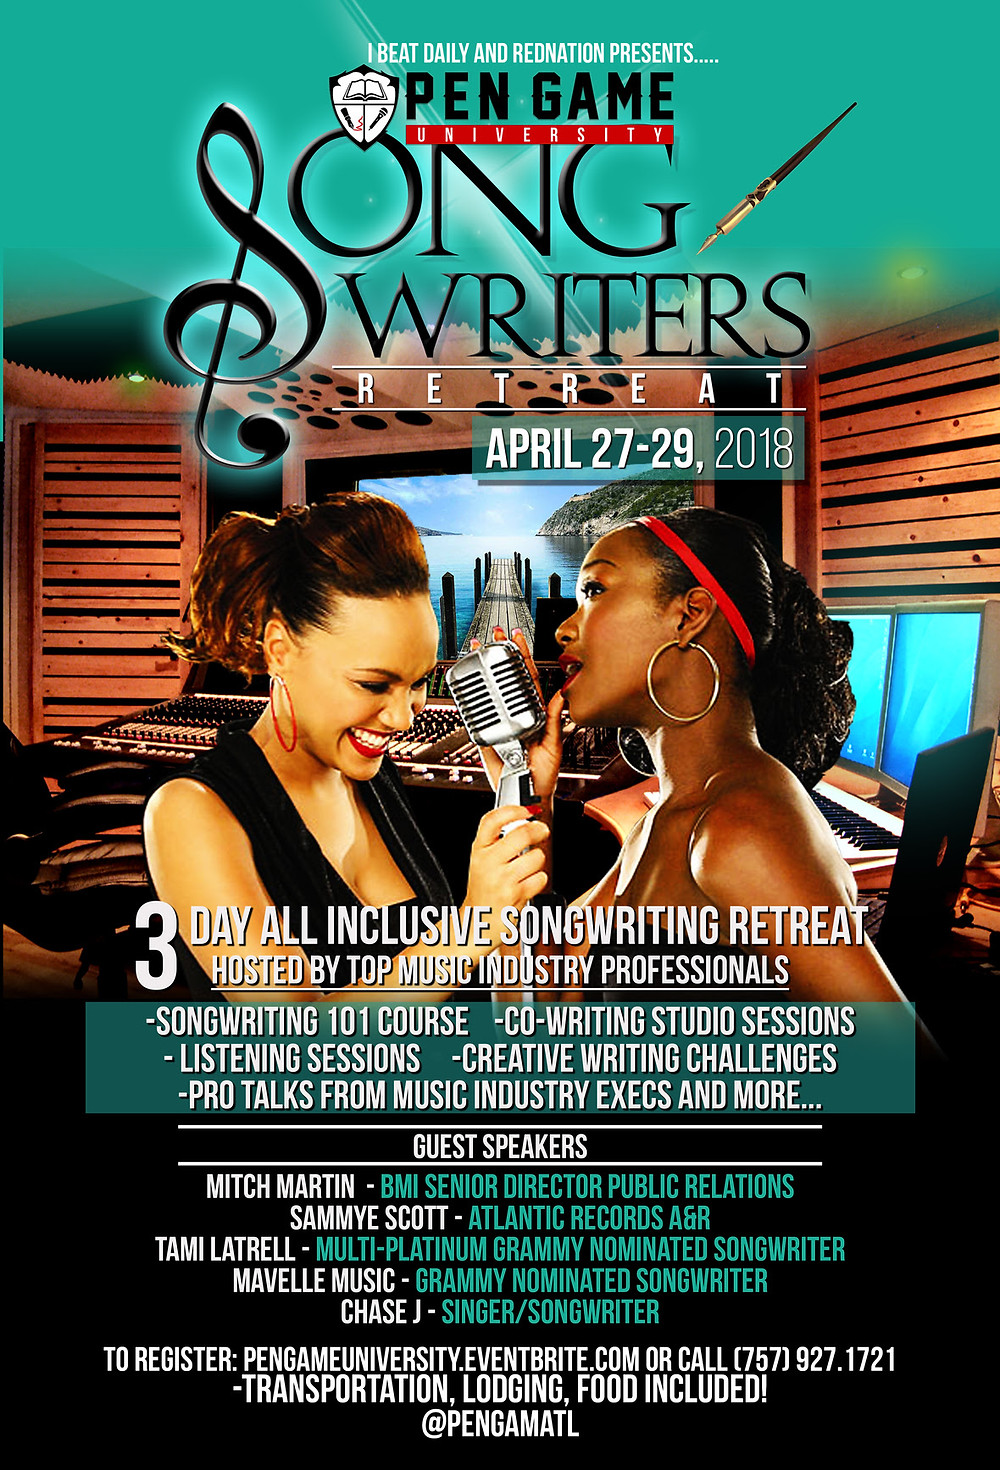 Atlantic Records, BMI, and More @PenGame Songwriters Retreat this Weekend!